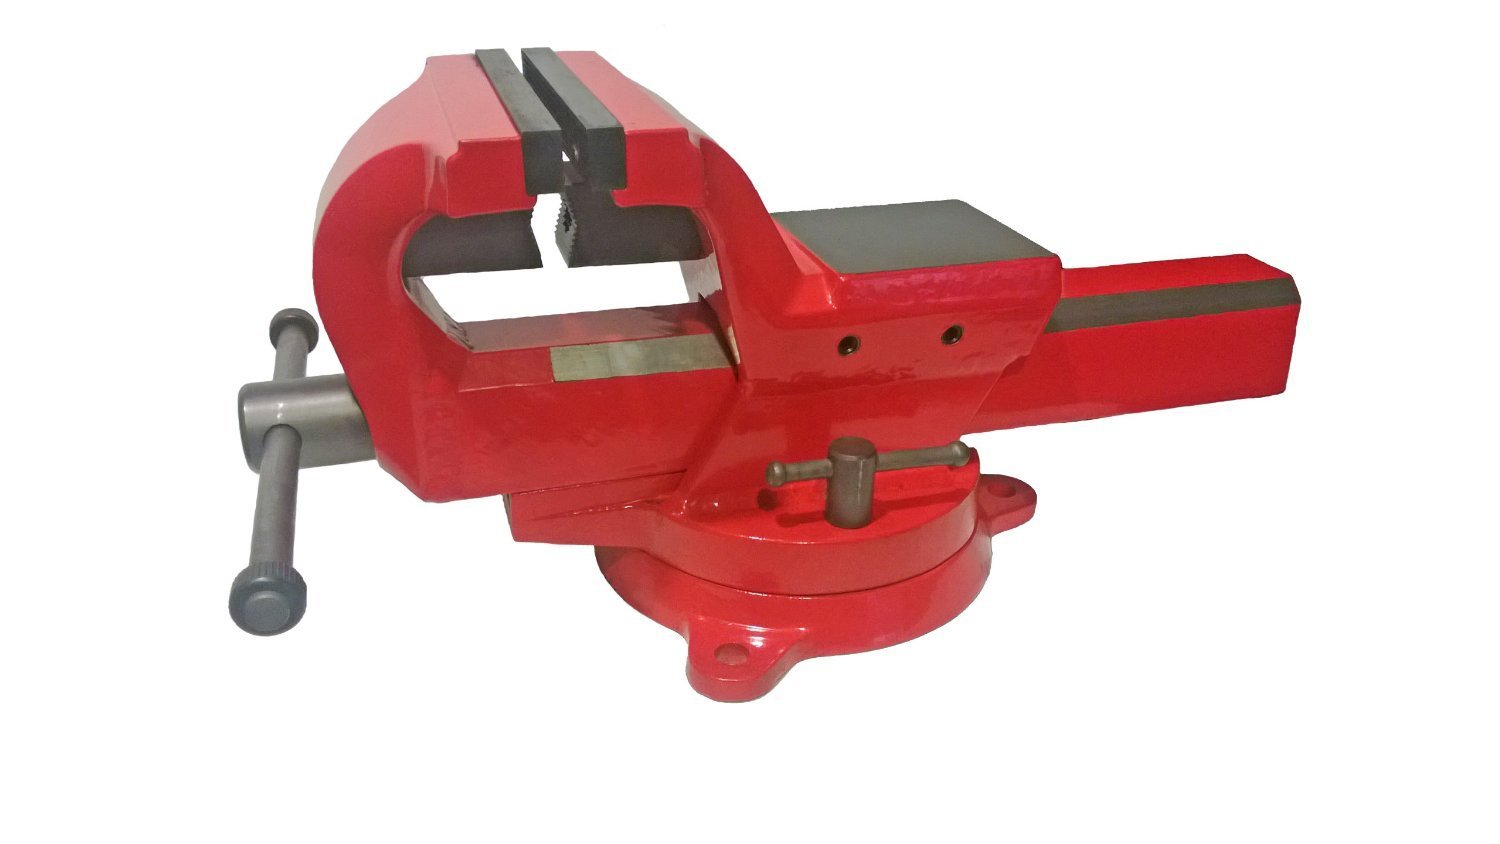 Yost Vises FSV-5 5-Inch Heavy-Duty Forged Steel Bench Vise with 360-Degree Swivel Base